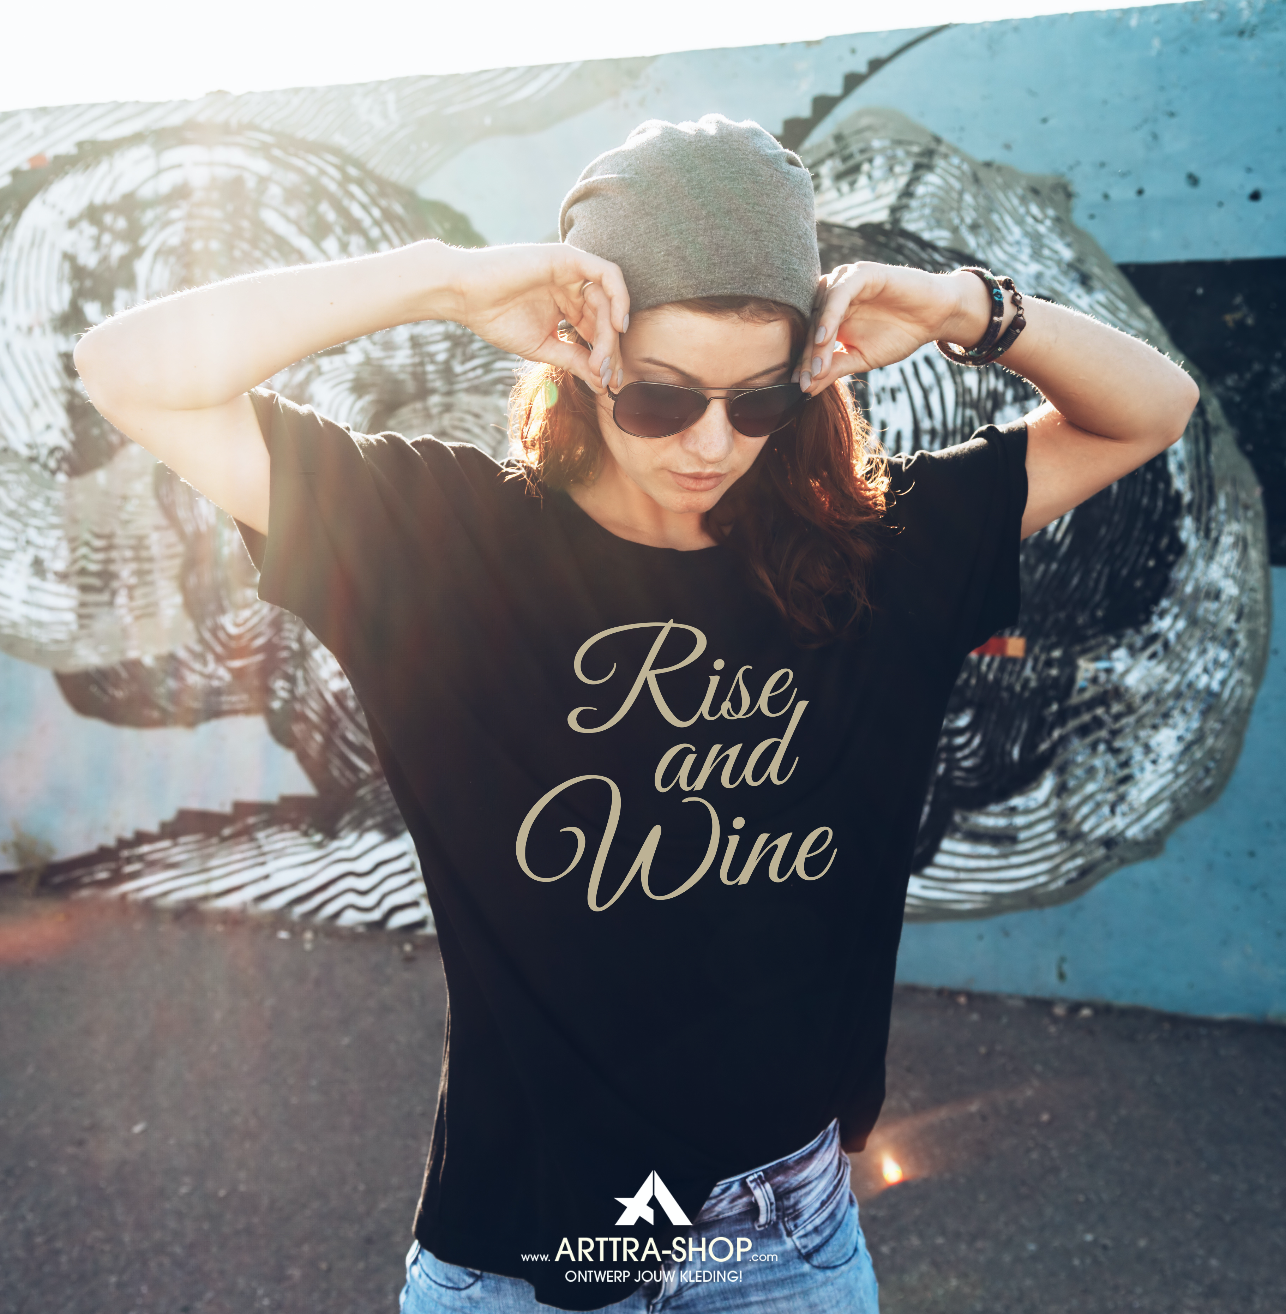 Rise and wine 01759